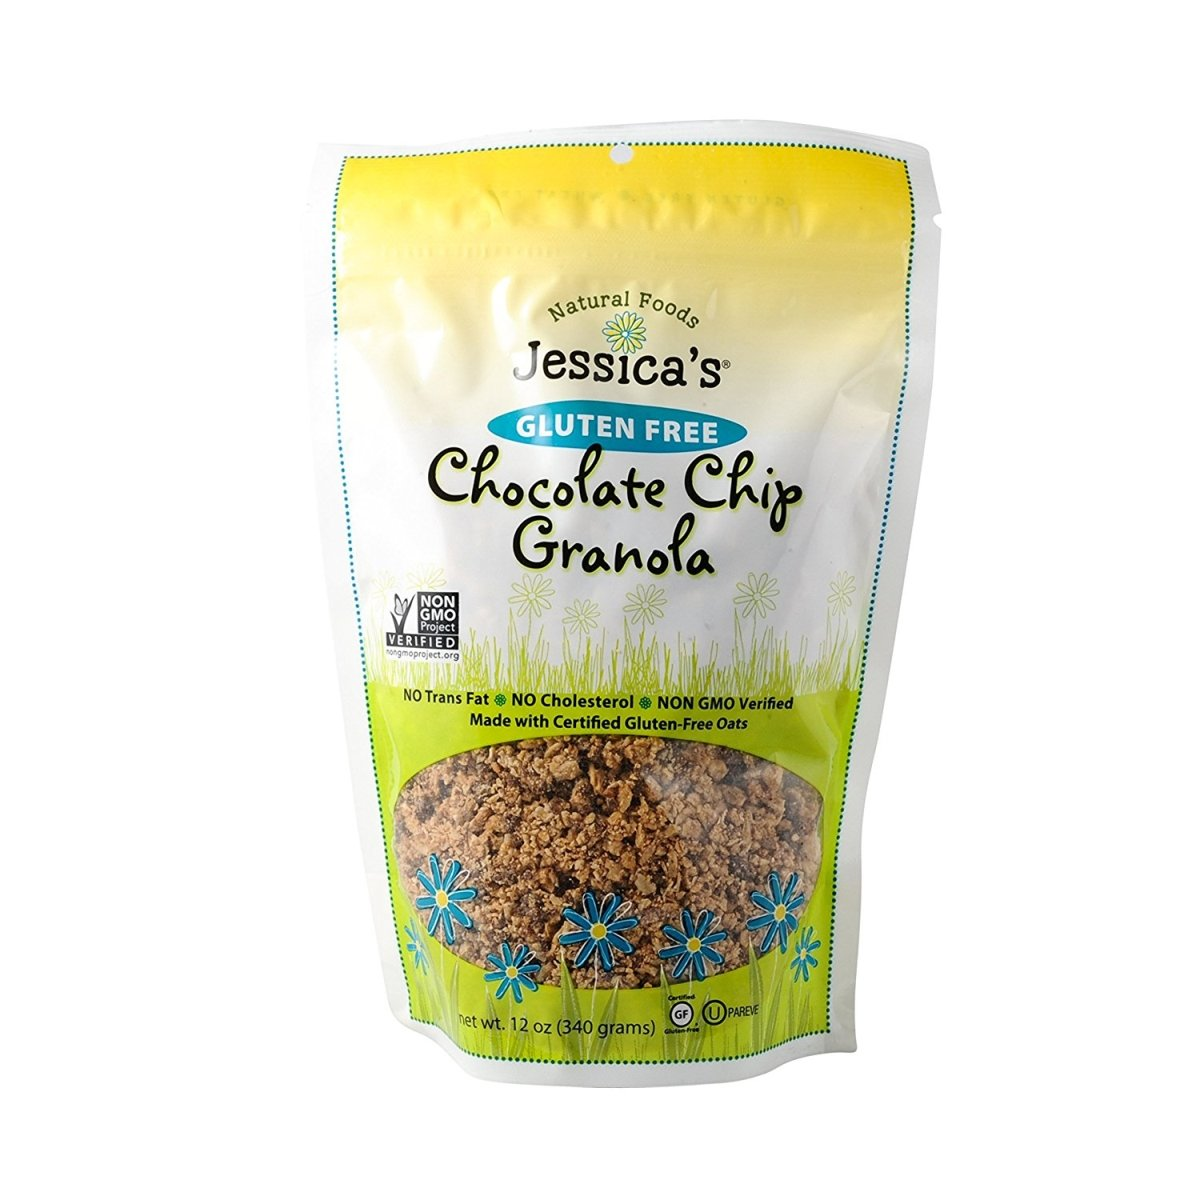 Jessica's Natural Foods Granola - Chocolate Chip - Case of 12 - 12 oz. by Jessica's Natural Foods